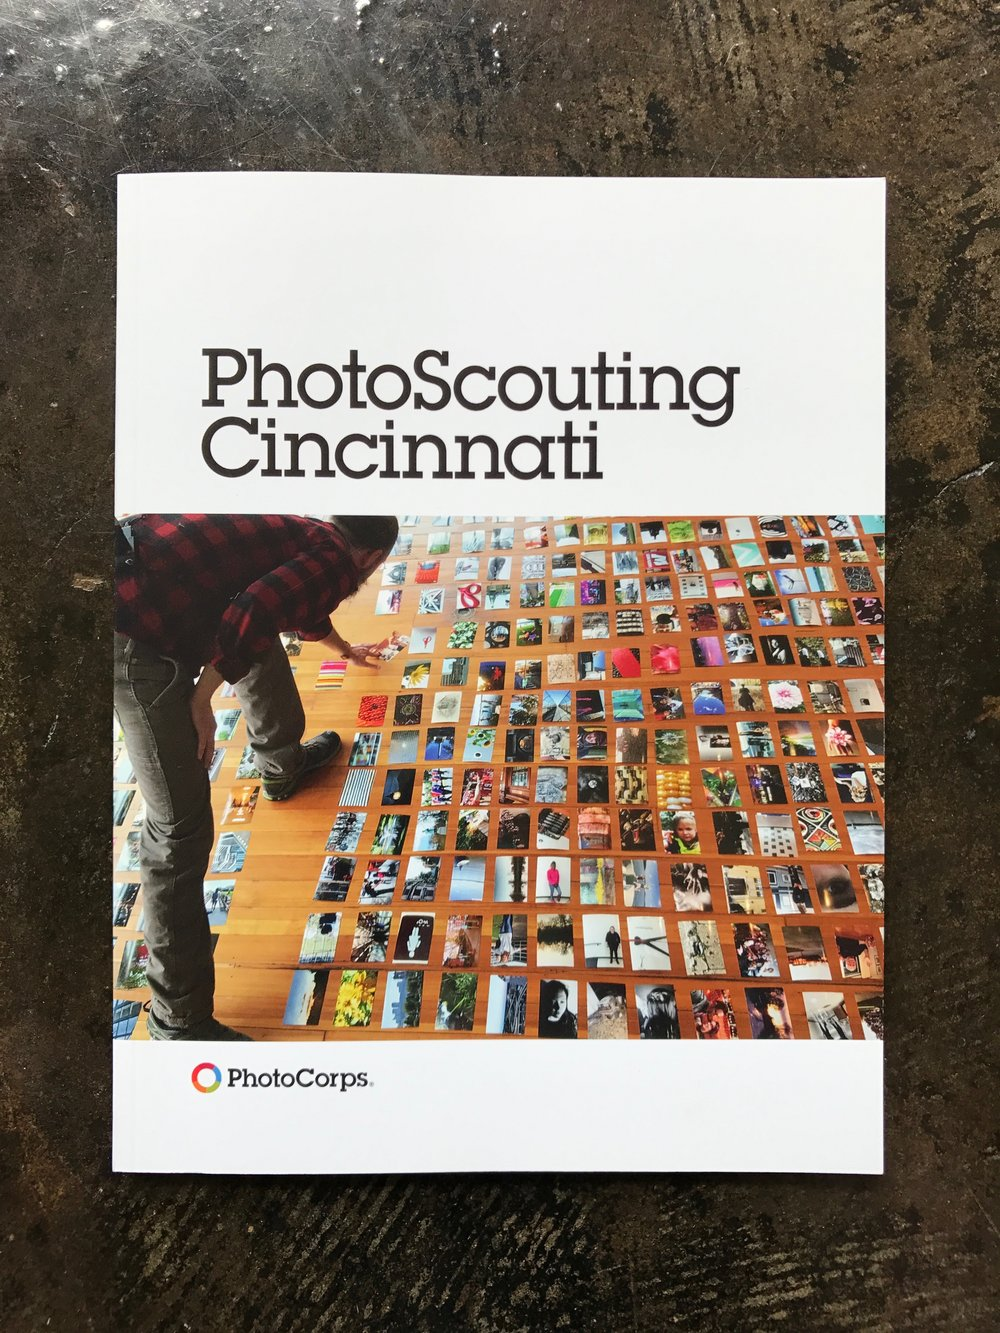 PhotoScouting Cincinnati  - First Edition (print). Chris Glass' People's Liberty project, PhotoCorps, published a book containing locally-sourced photography based on specific community themes. I contributed 5 pieces to it.